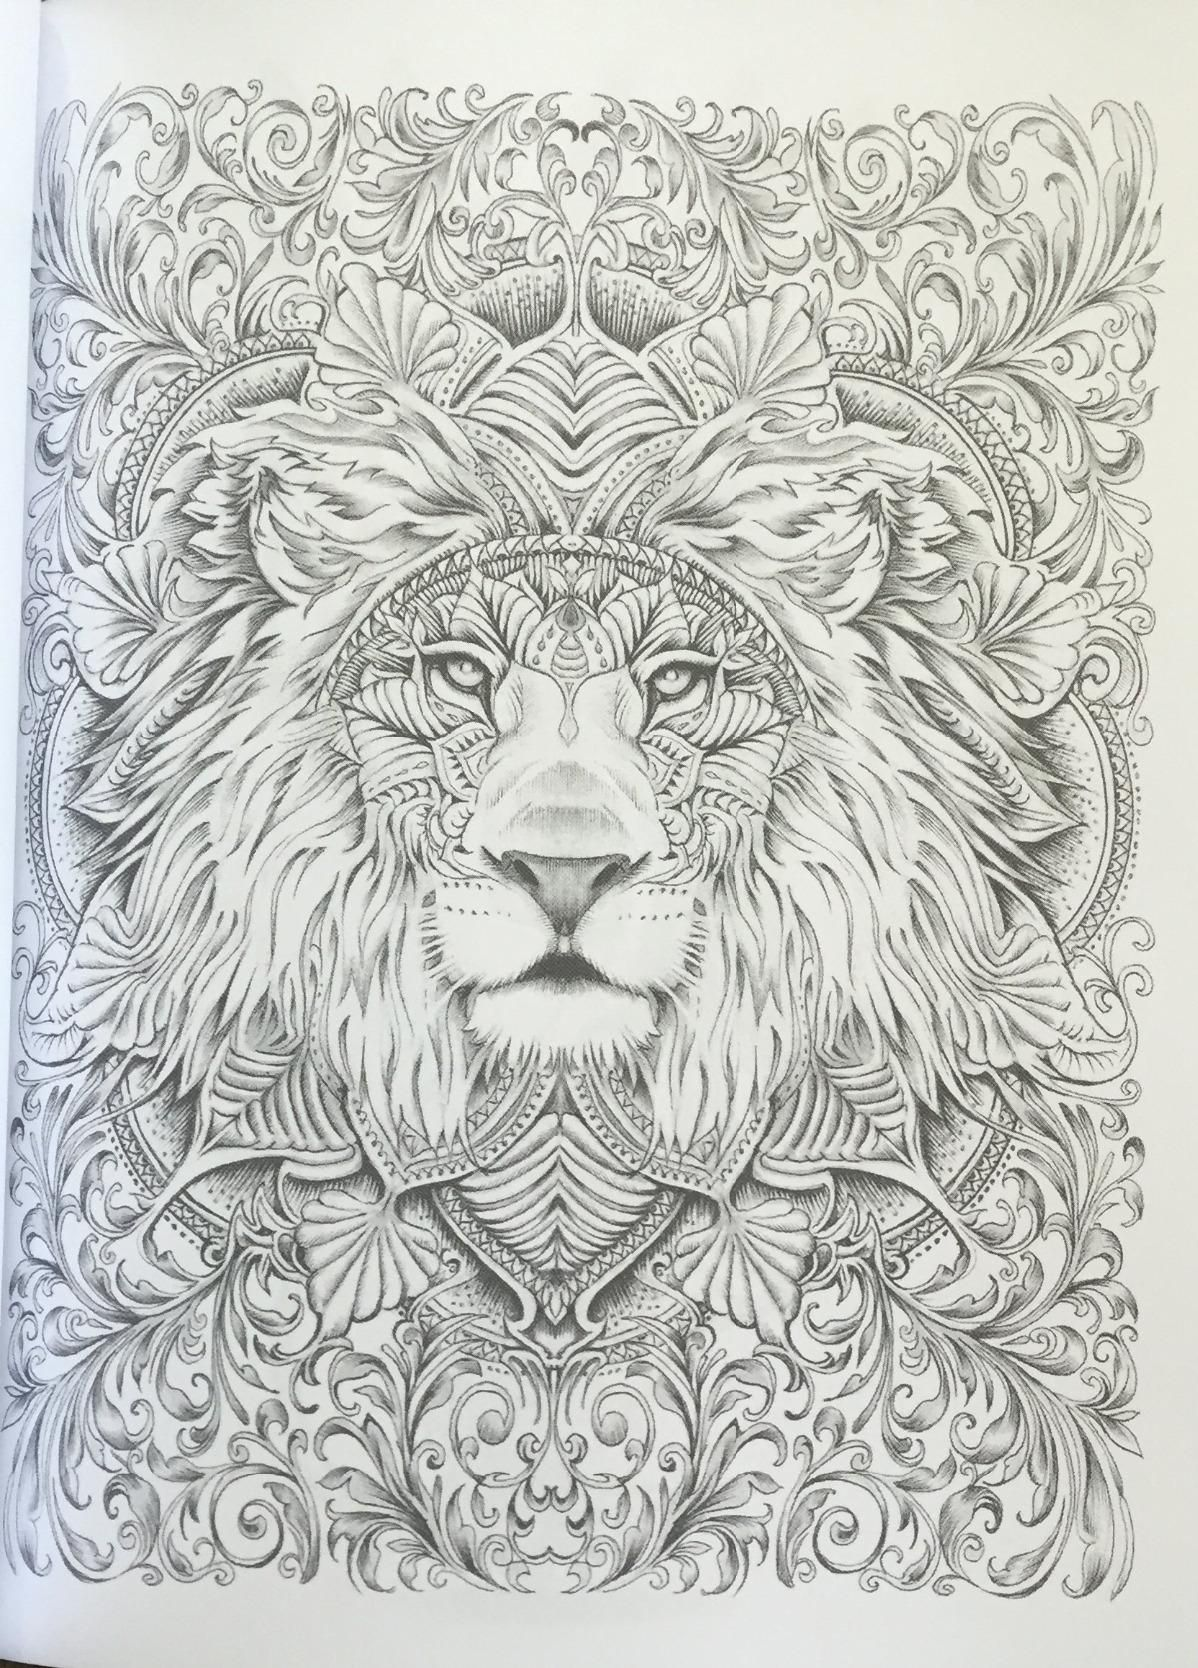 The coloring book project 2nd edition - Colour My Sketchbook 3 Greyscale Colouring Book Volume 1 Bennett Klein